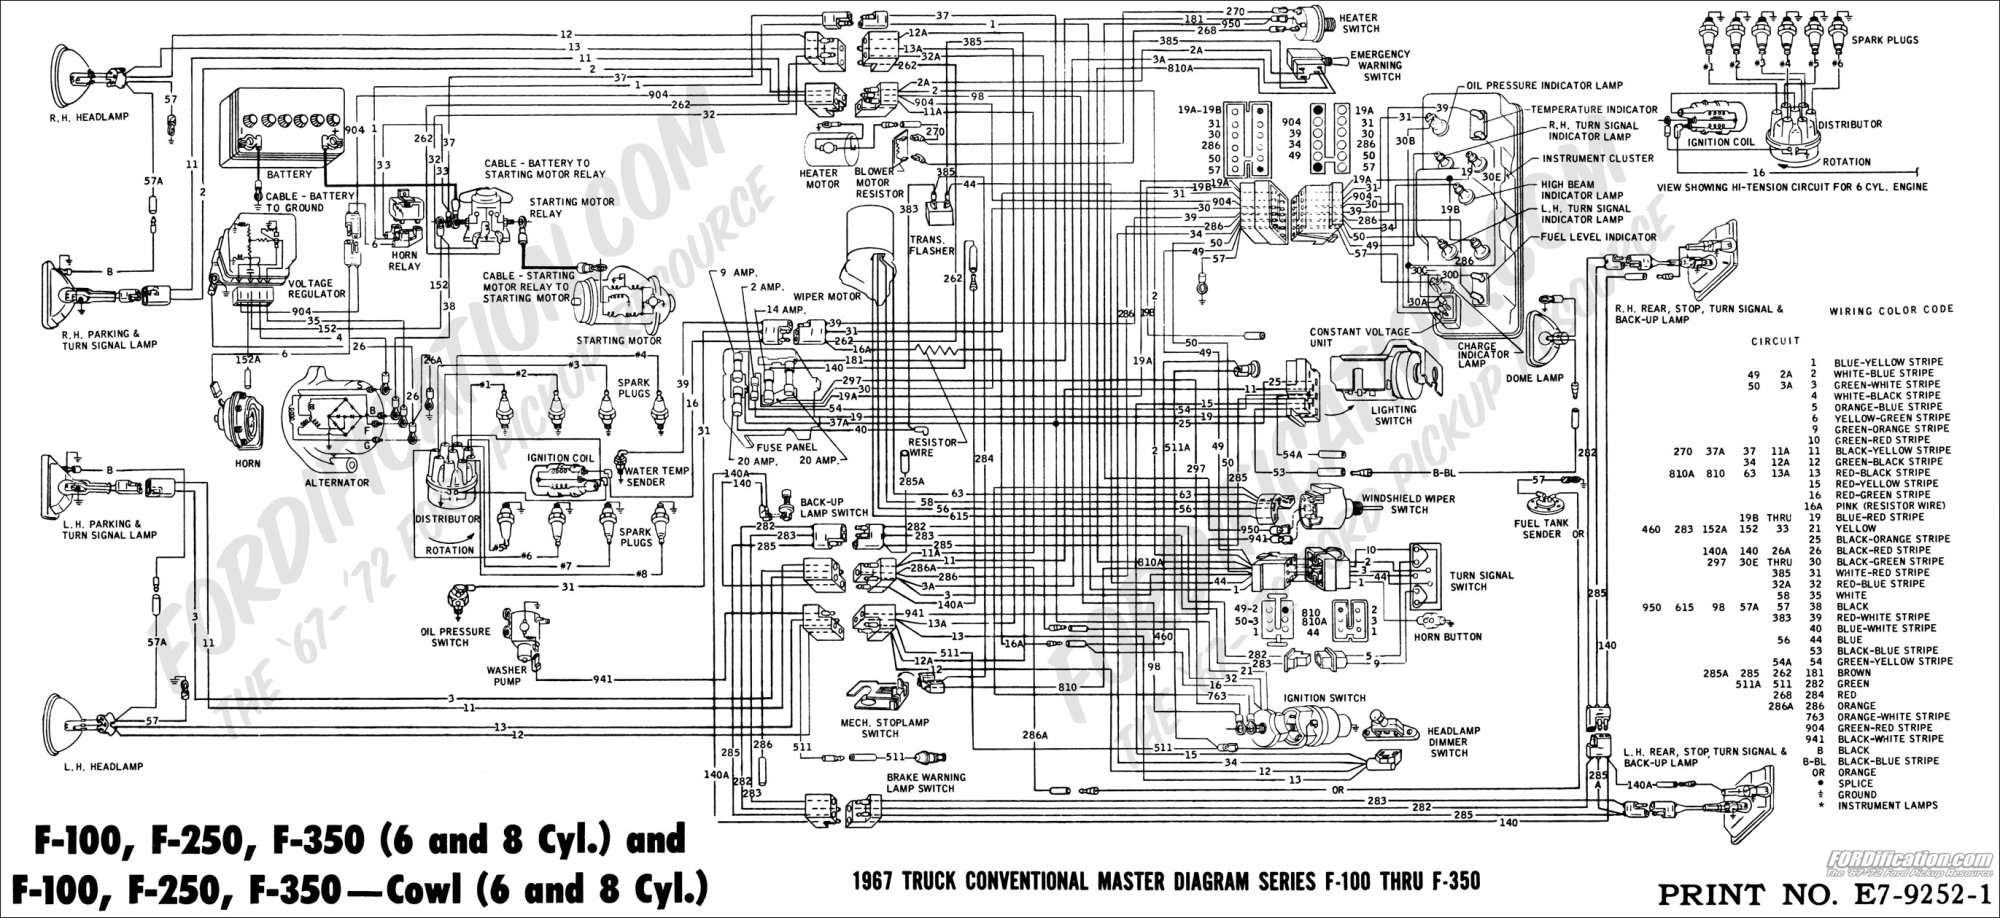 hight resolution of 2000 e150 wiring diagram schematic wiring diagrams 2000 ford e150 engine ford e150 2000 fuse diagram